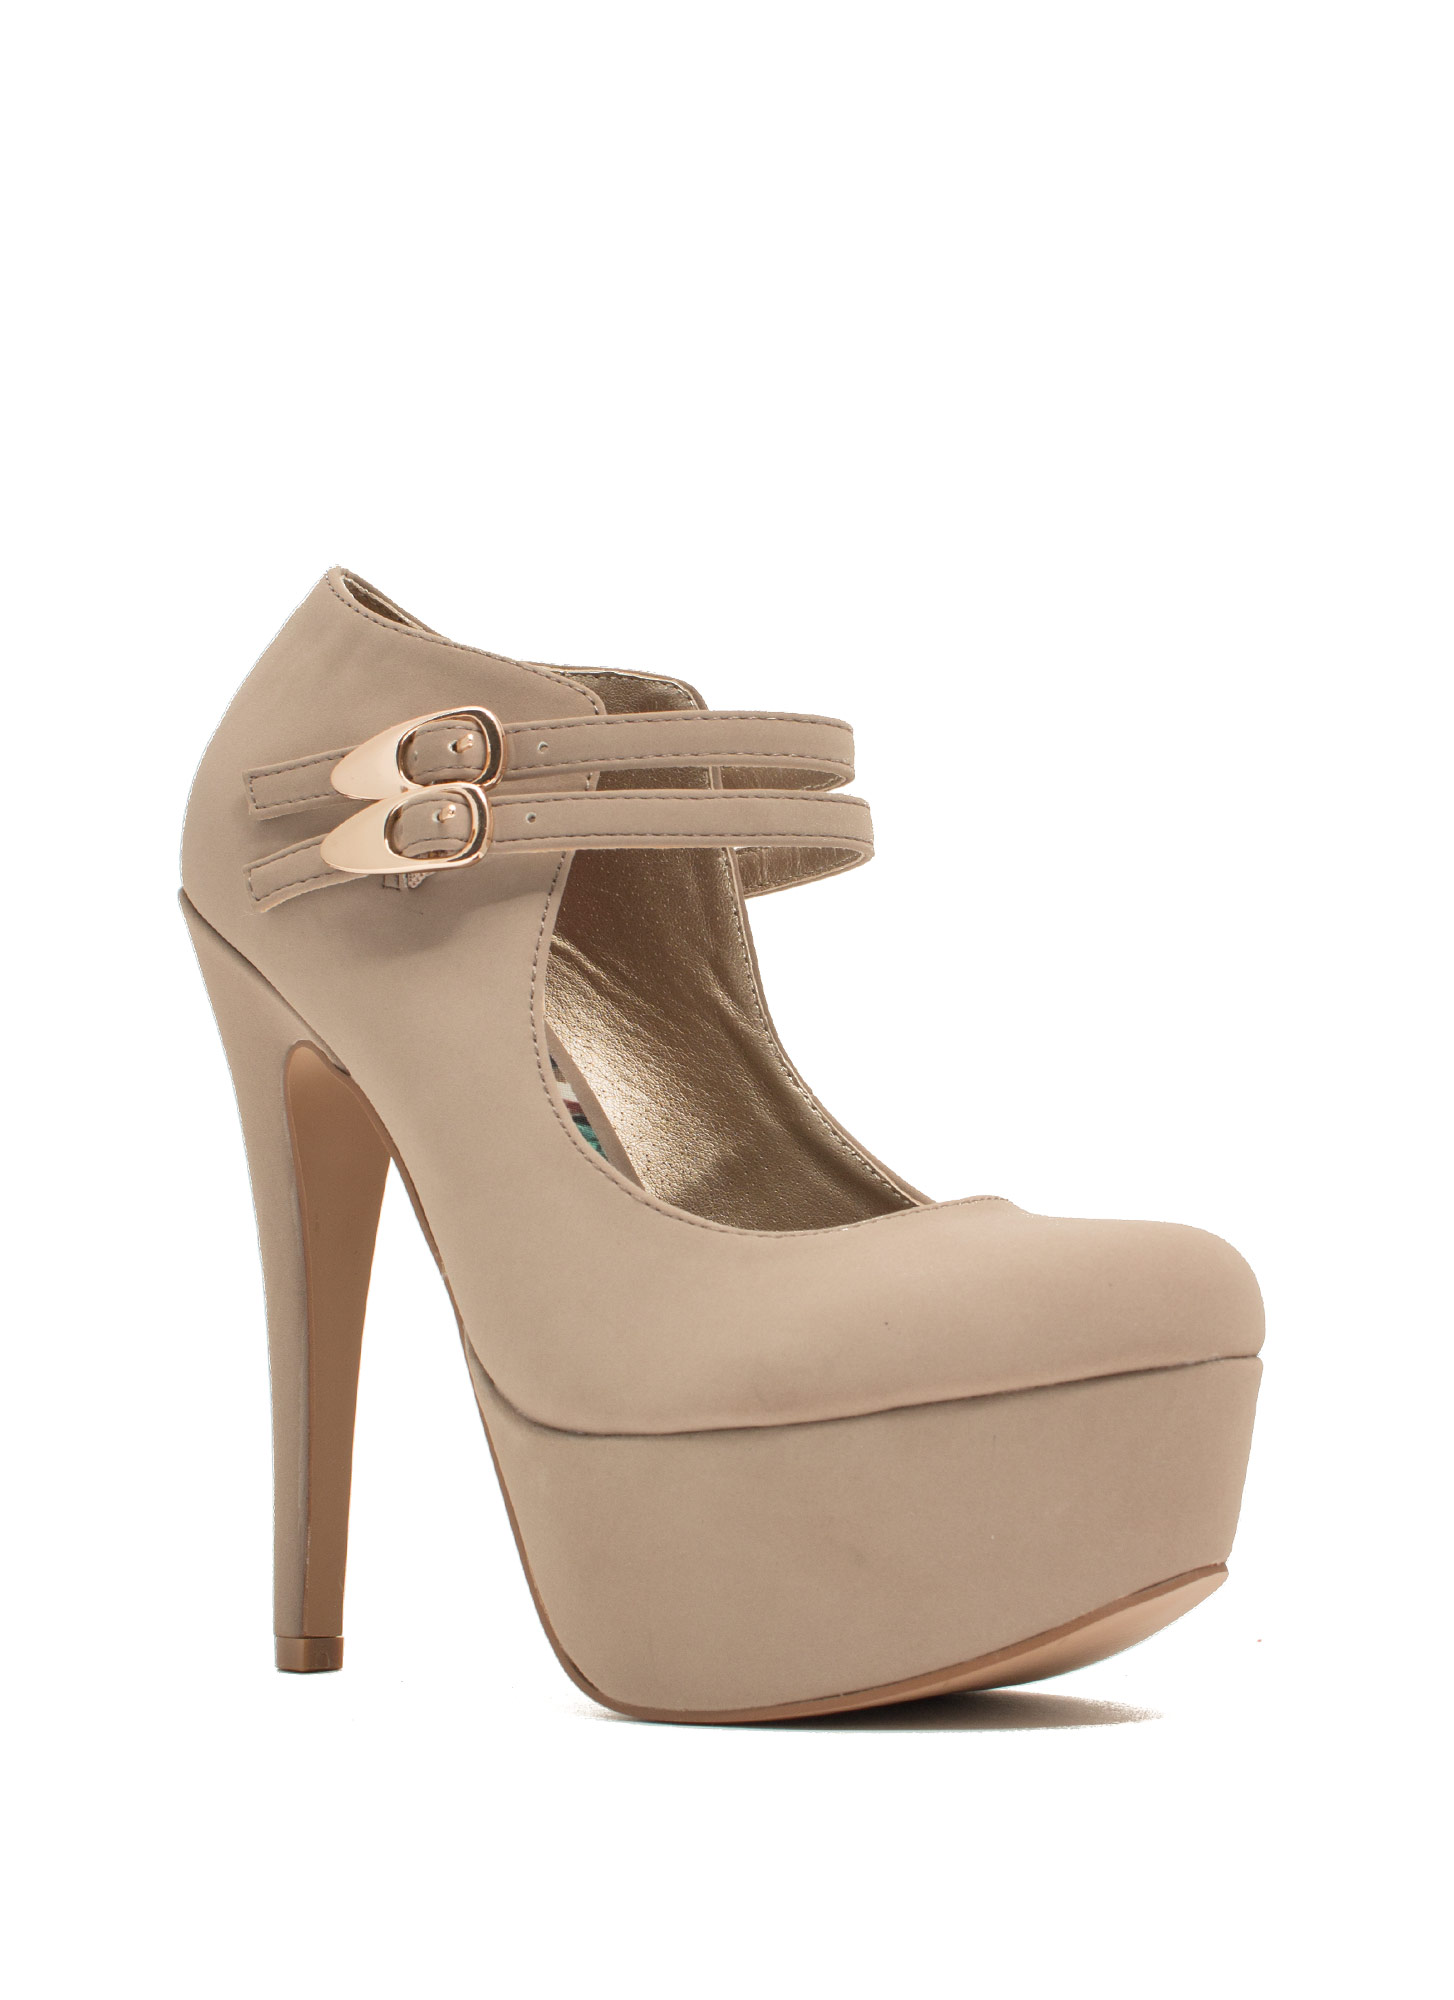 Girl Crush Faux Nubuck Mary Jane Heels TAUPE